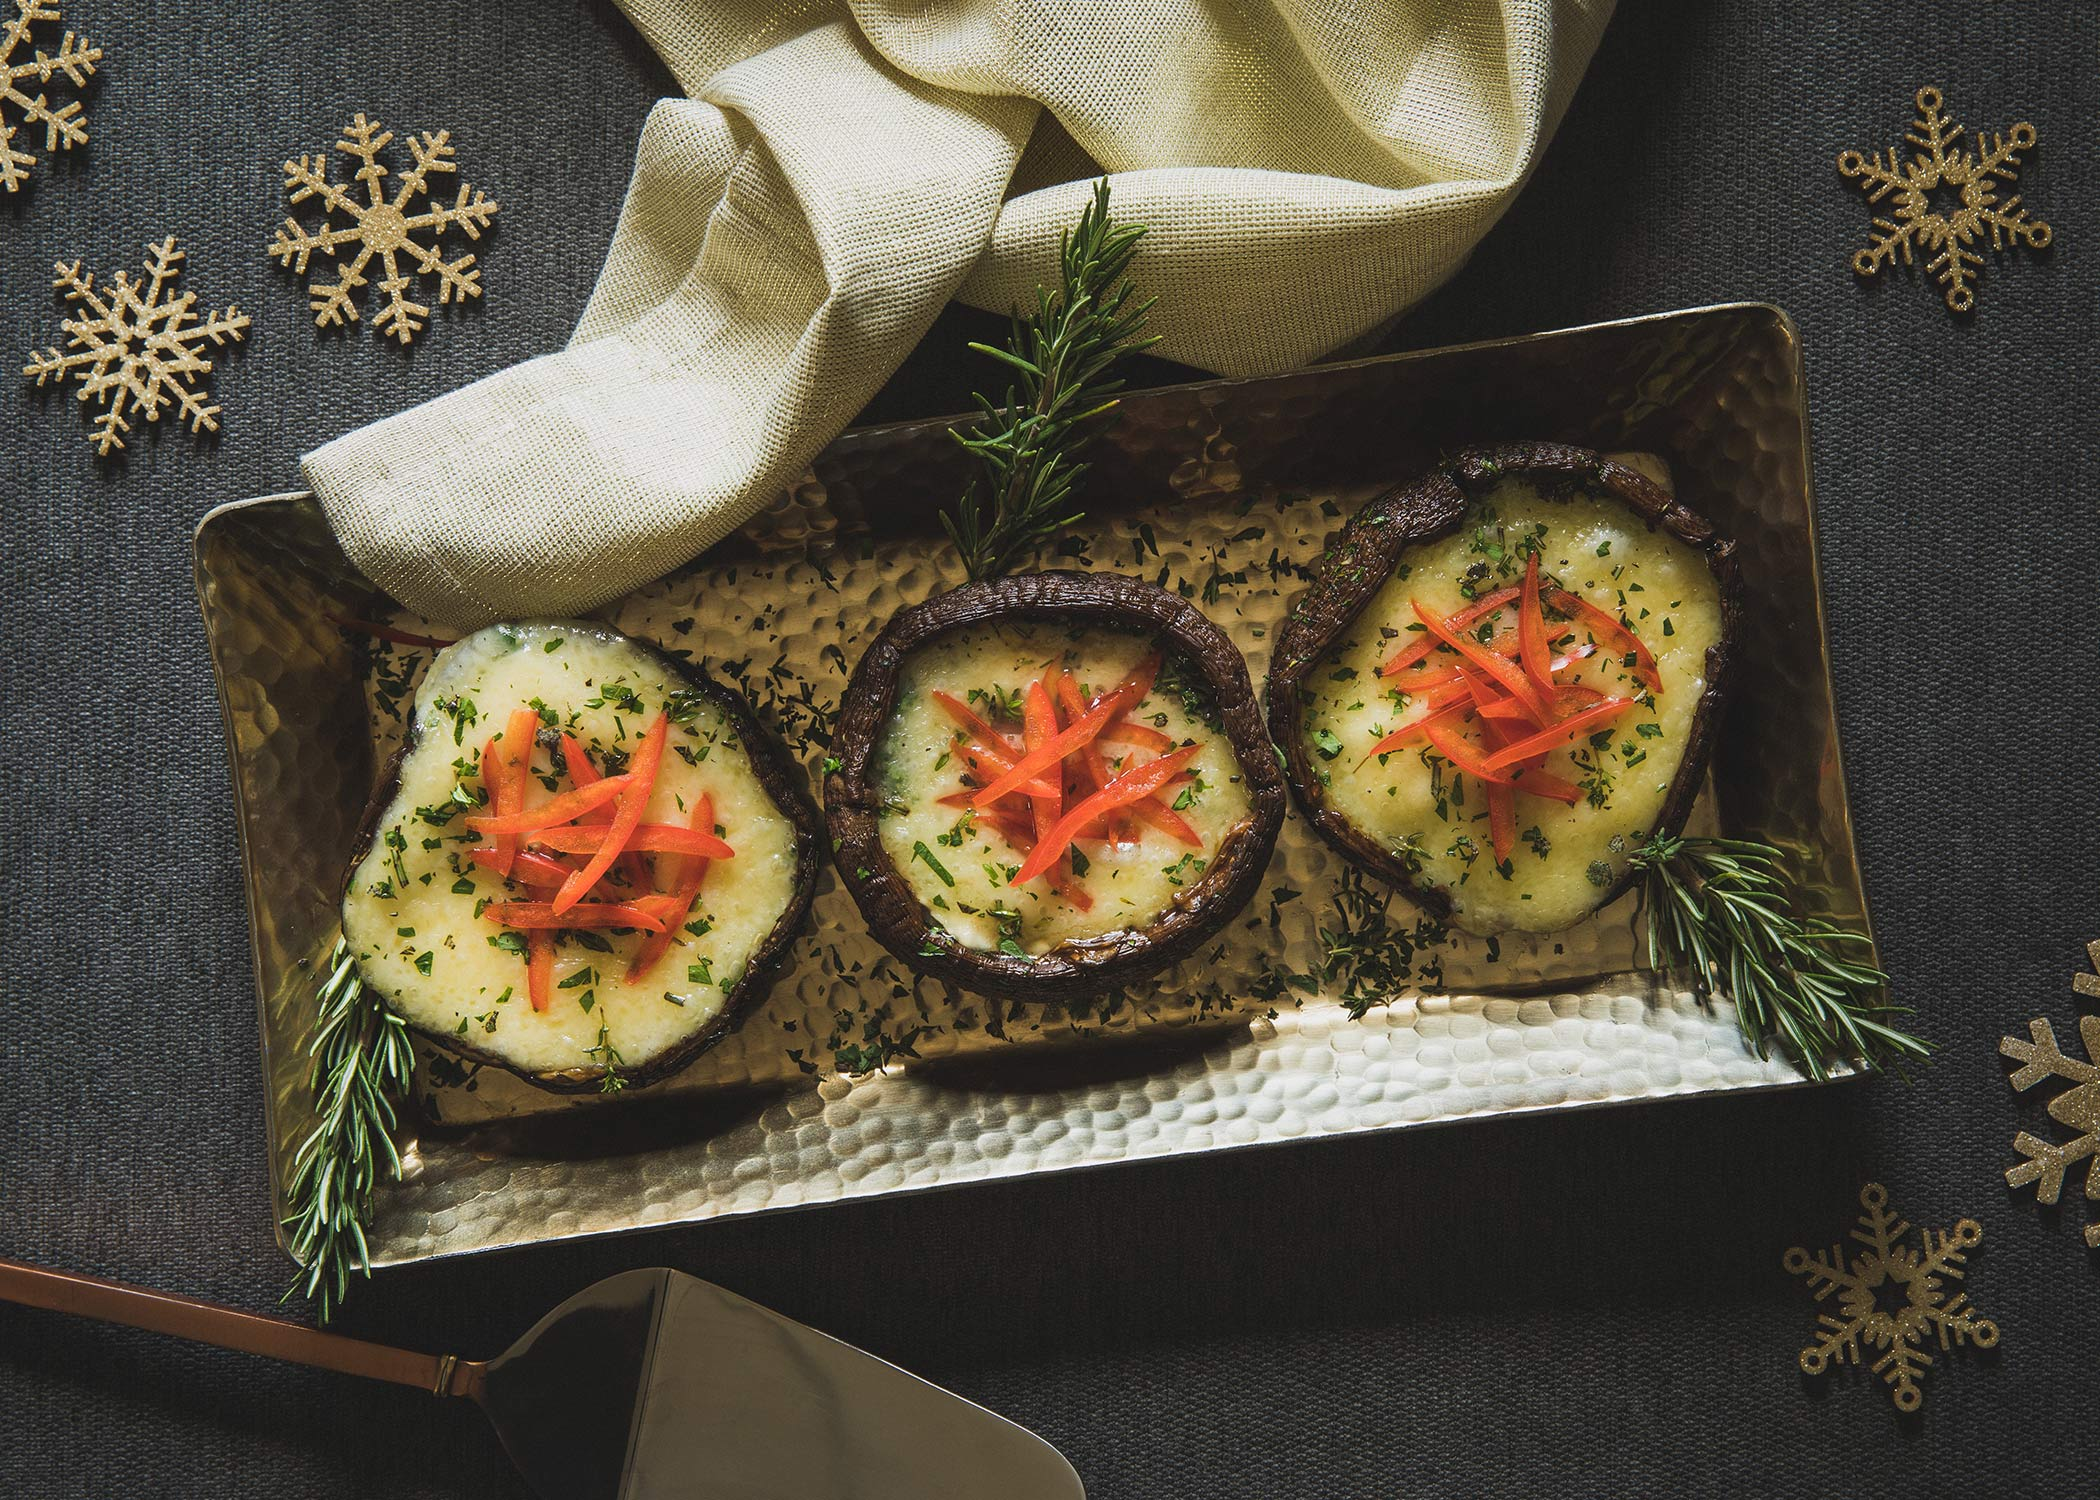 Brie_and_Herb_Stuffed_Portobello_Mushrooms_005_MWGtdg